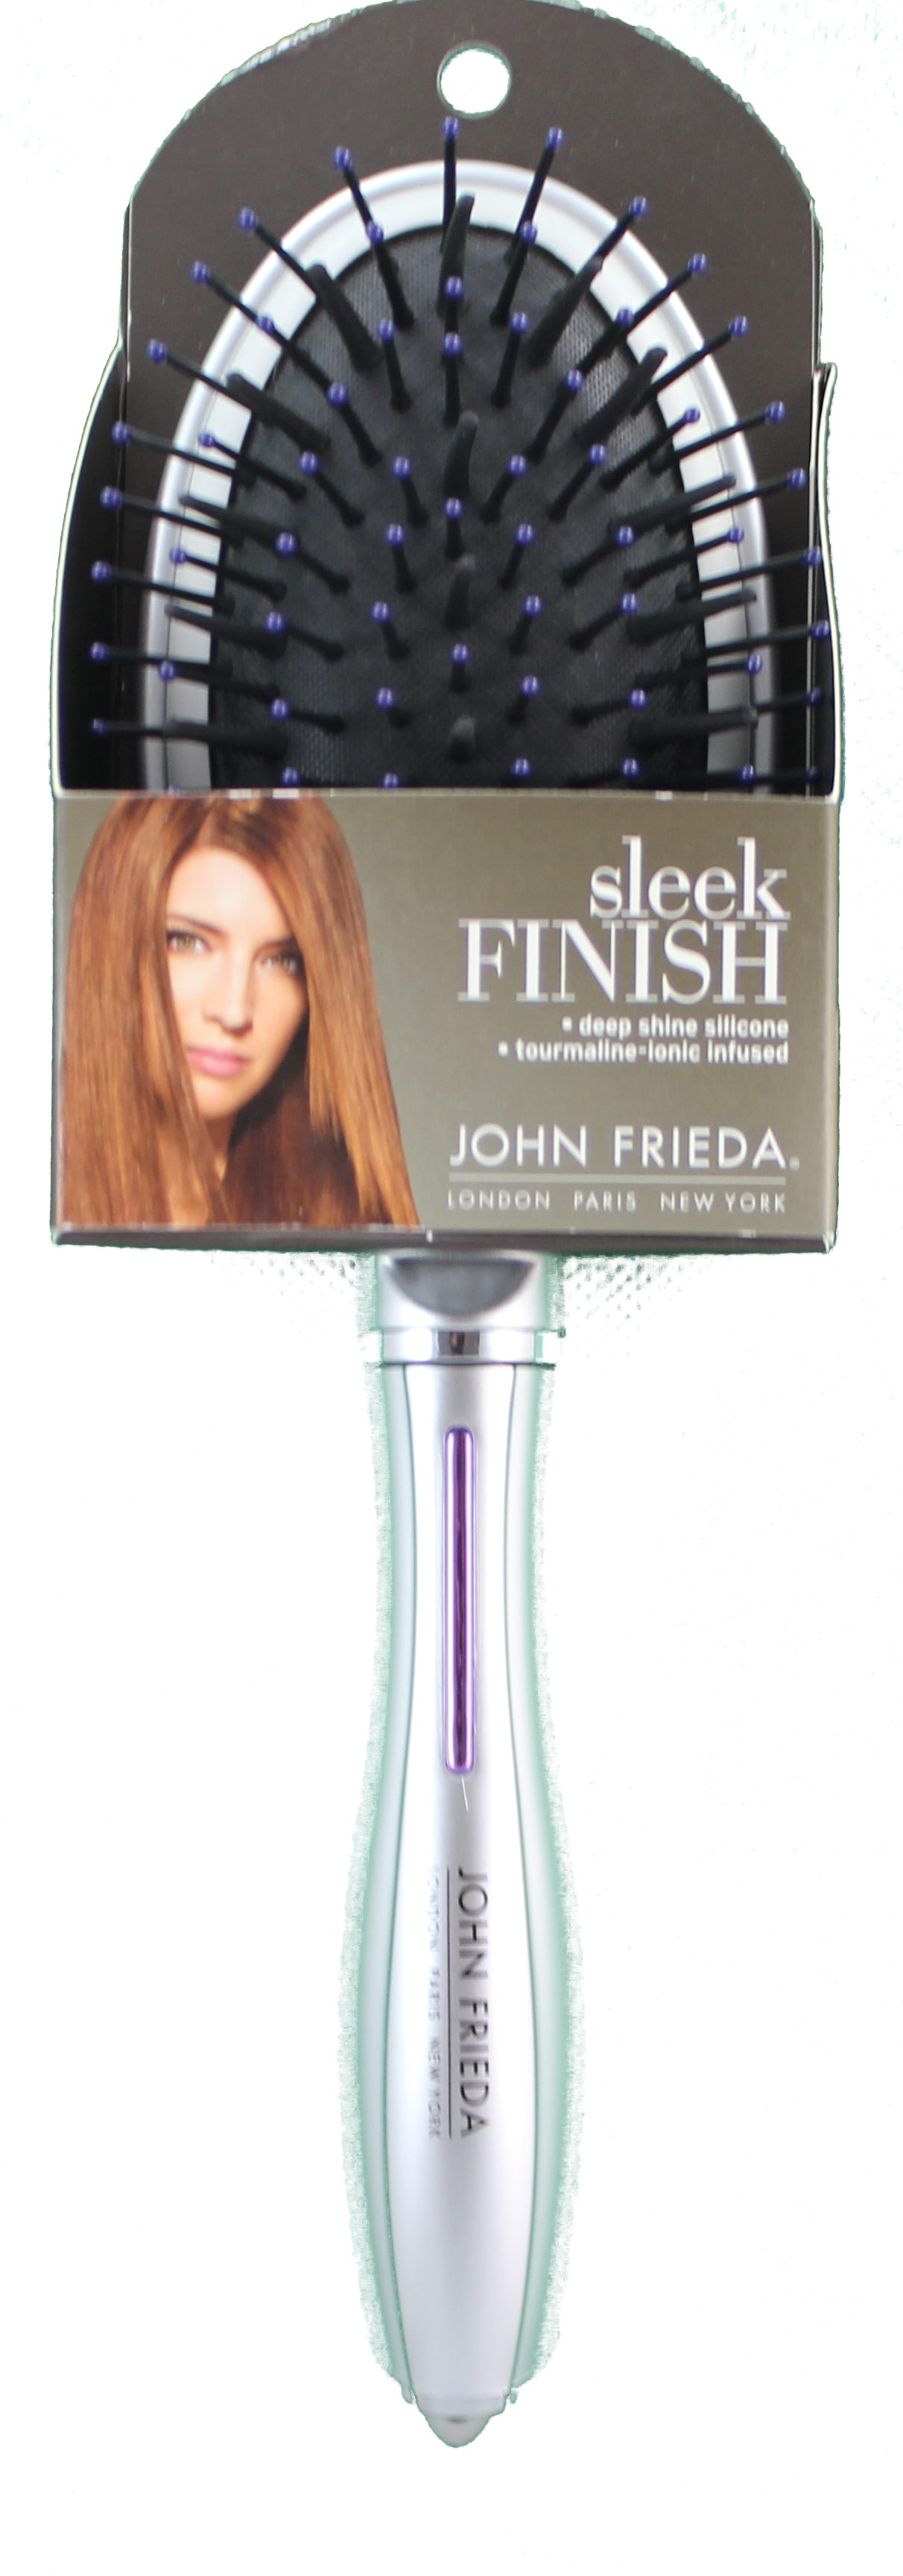 John Frieda Sleek Finish Cushion Brush